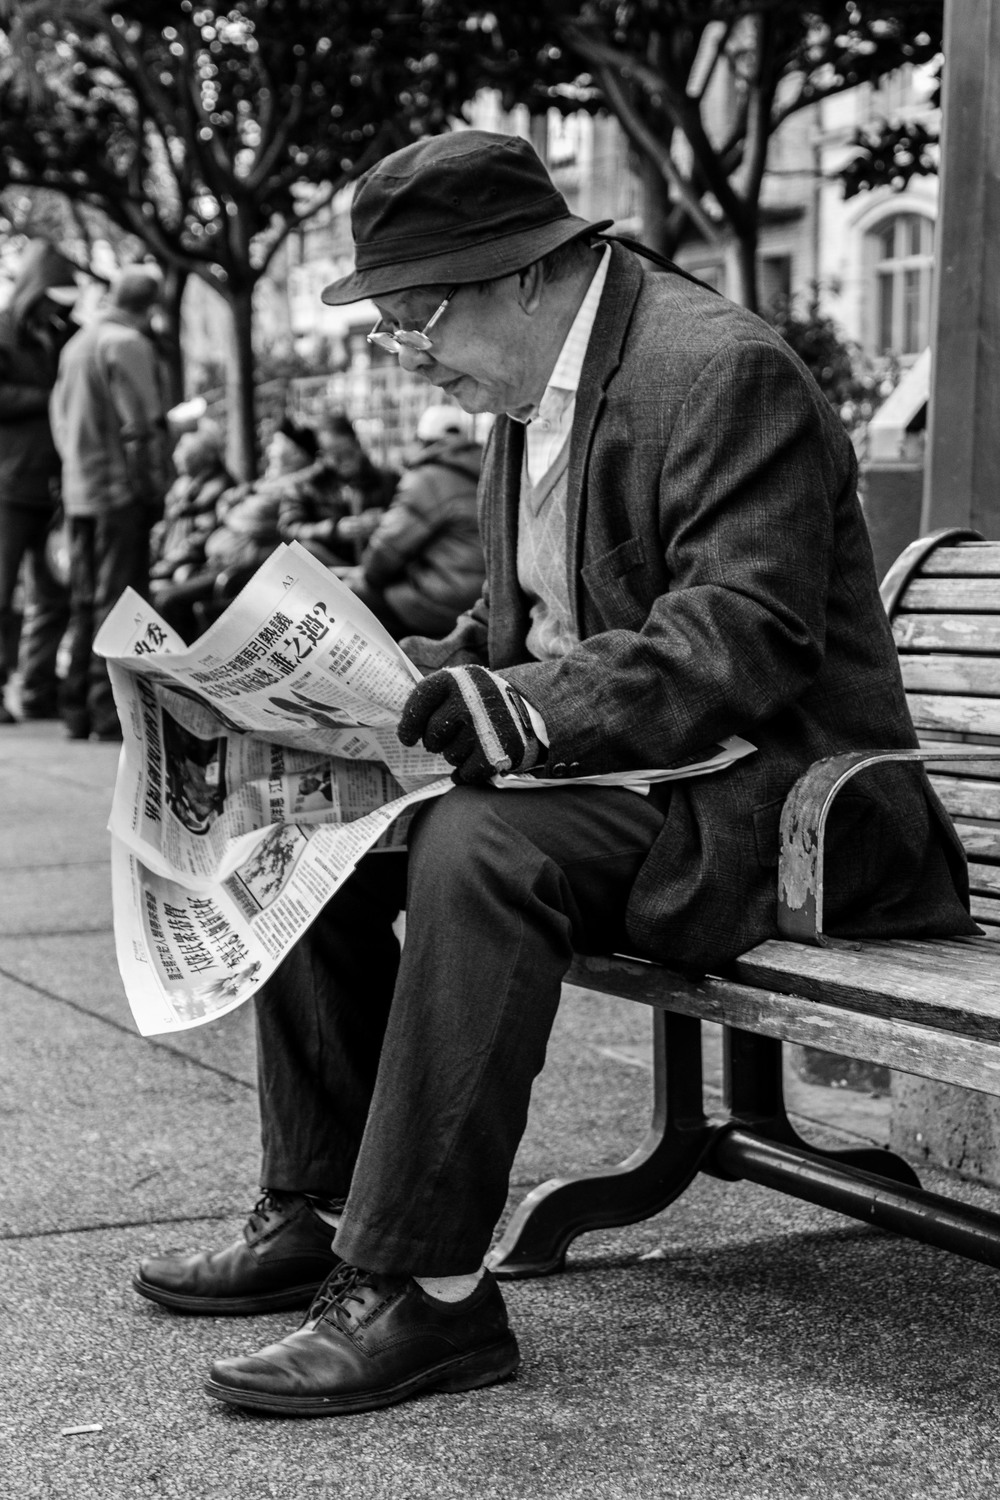 Here's a older gentleman reading his newspaper in Portsmouth Square.